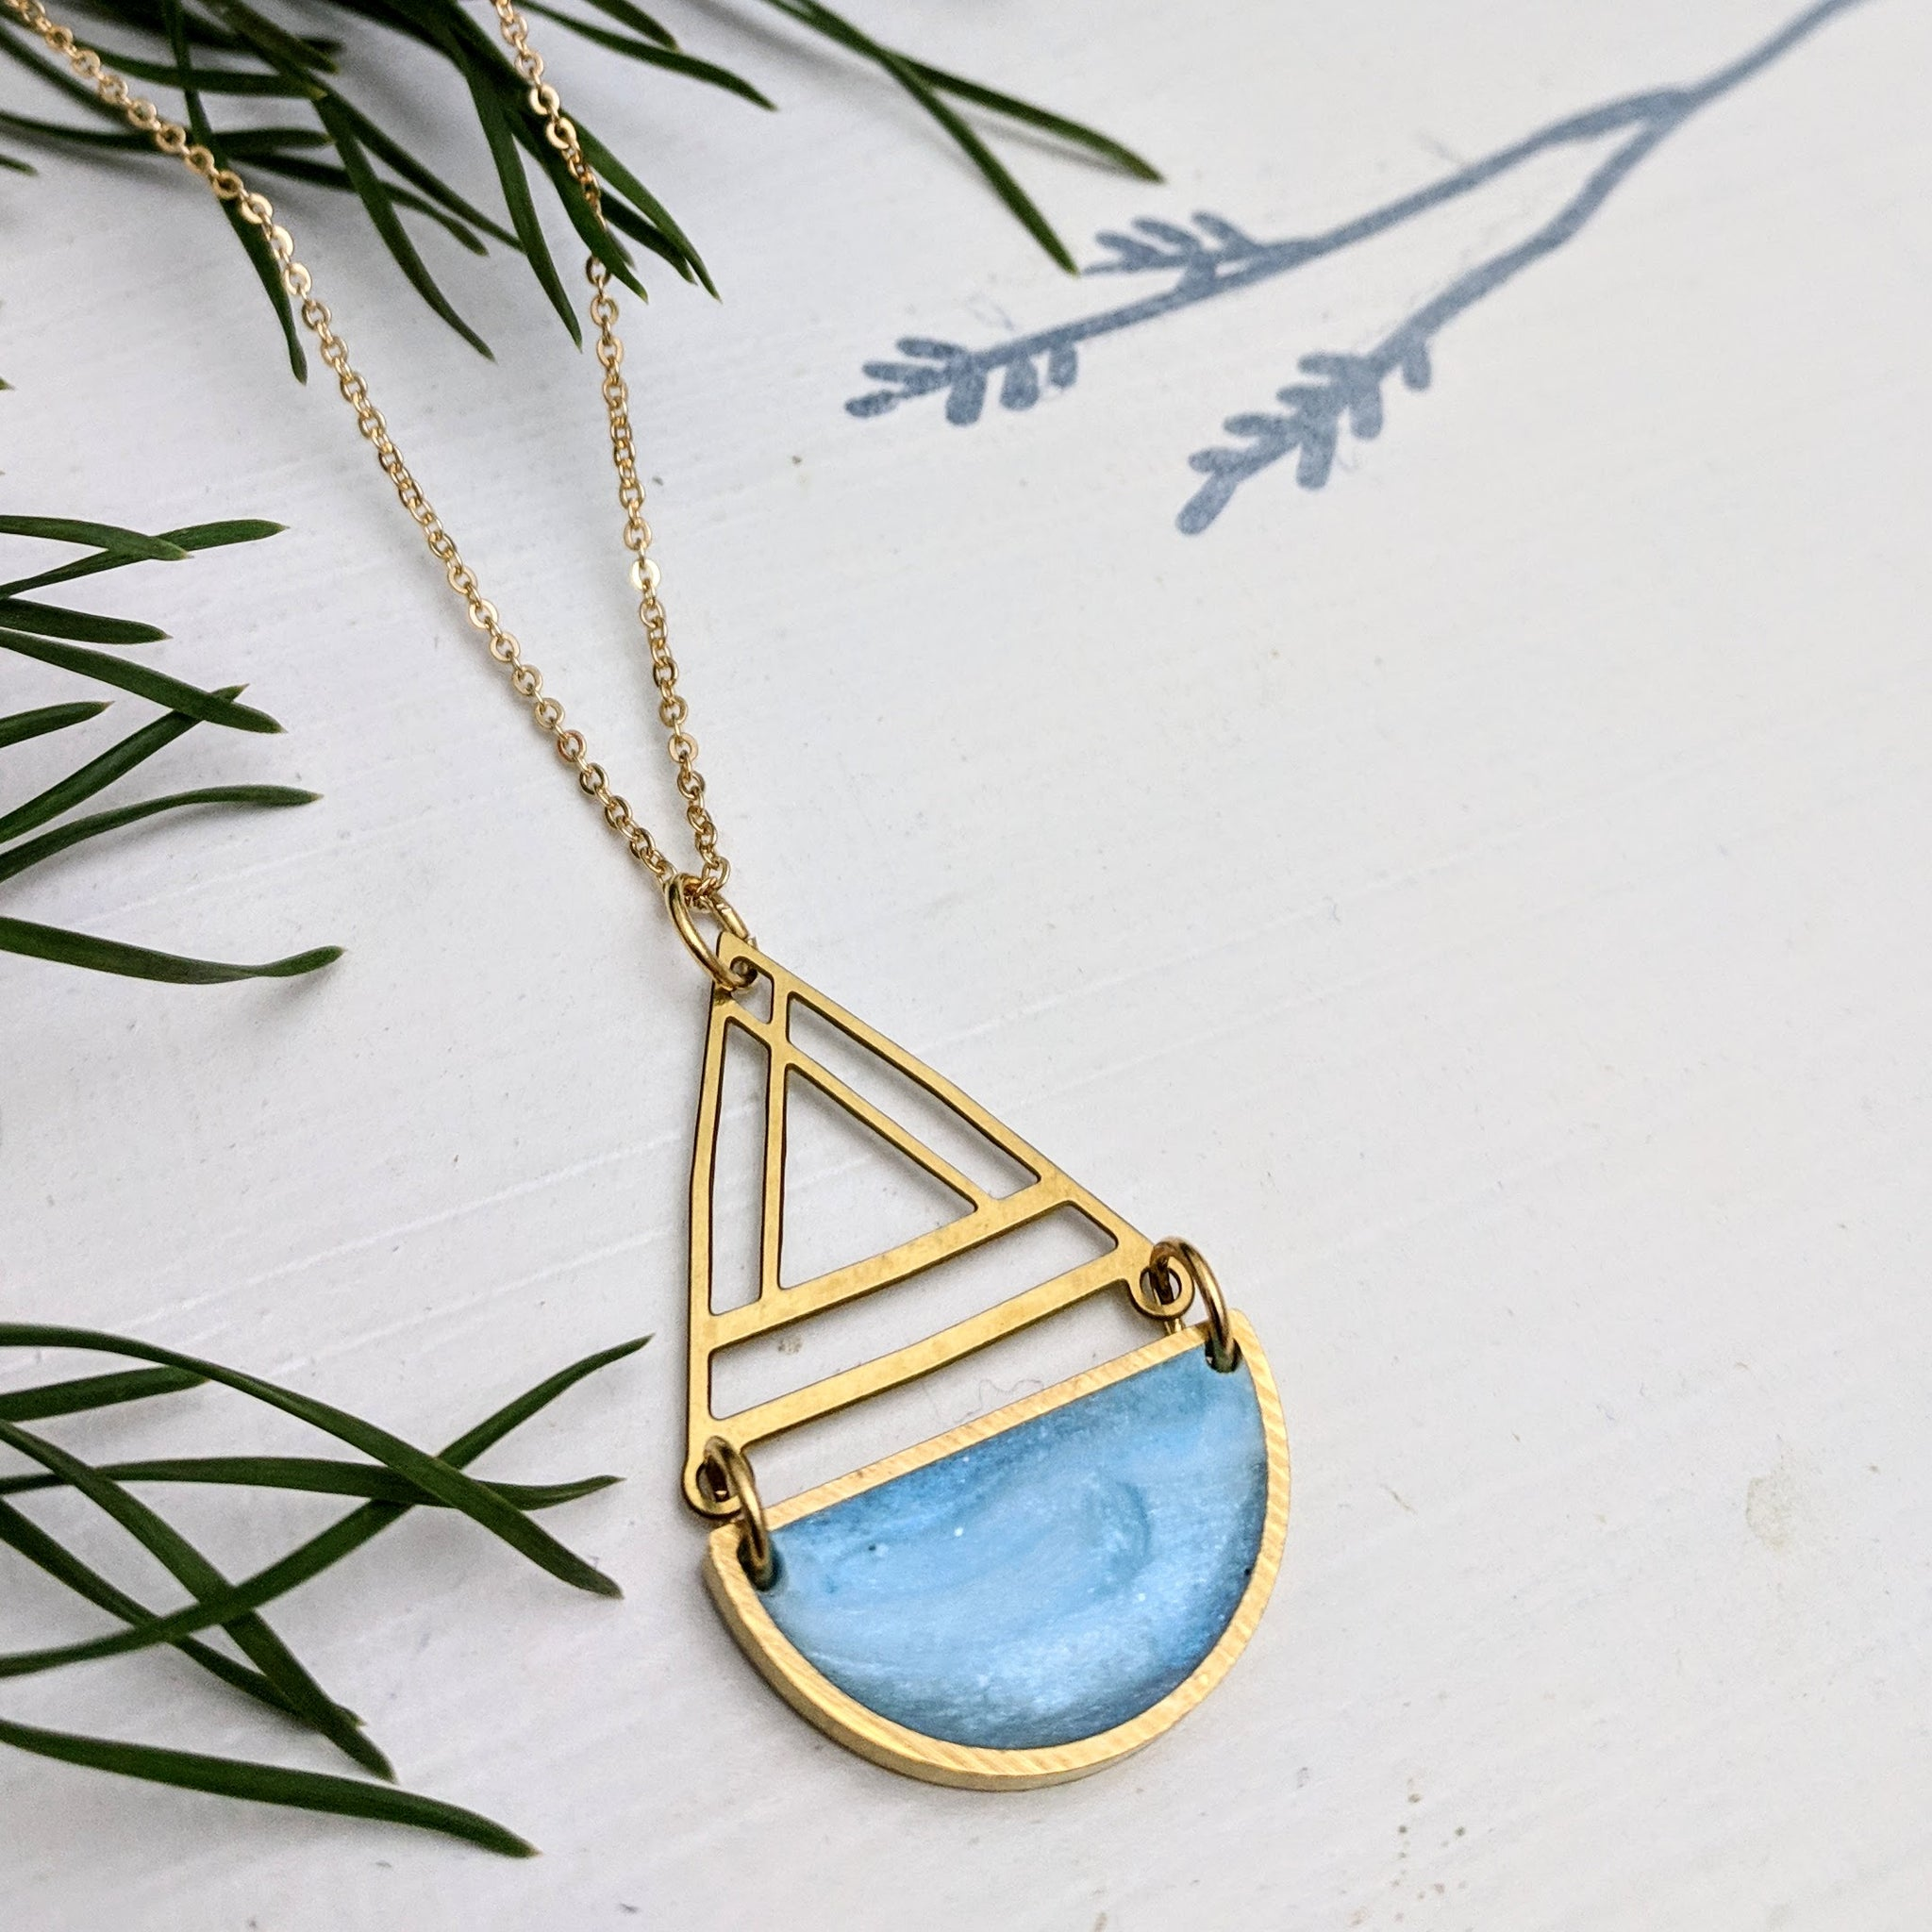 Brass and Resin Boat Necklace with Gold Plated Chain